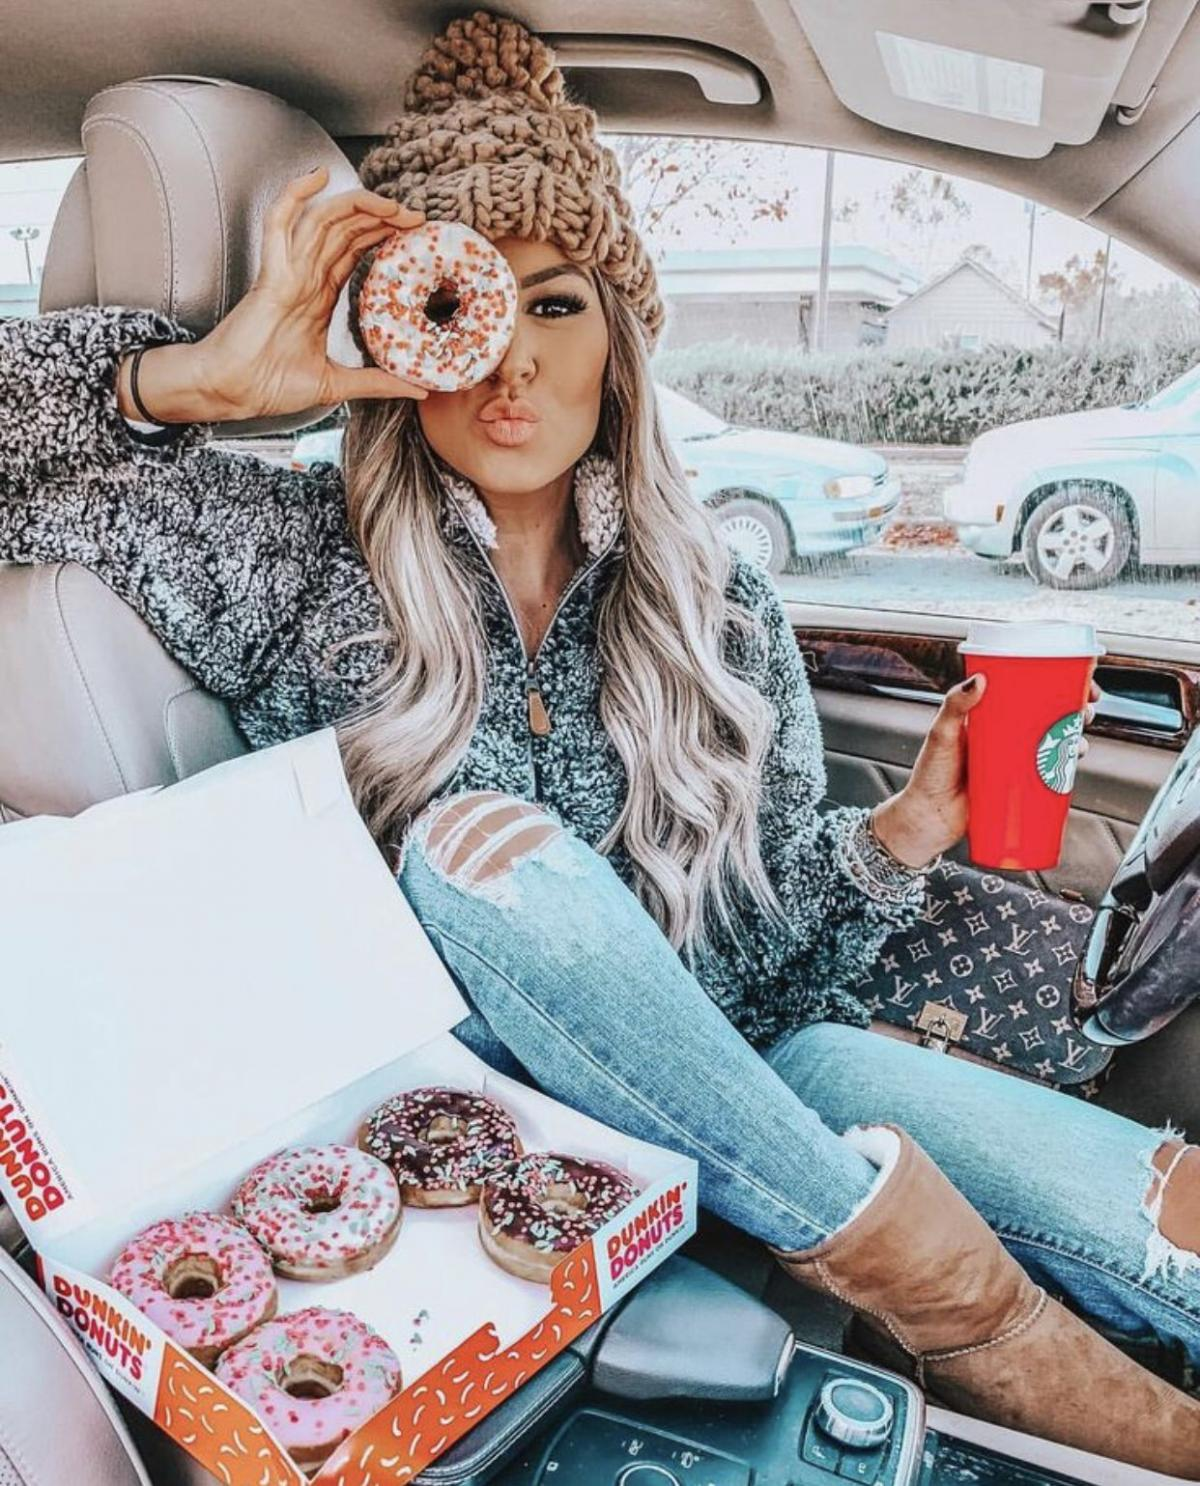 The best stop while traveling is a donut stop. Sexy girl got one and coffee